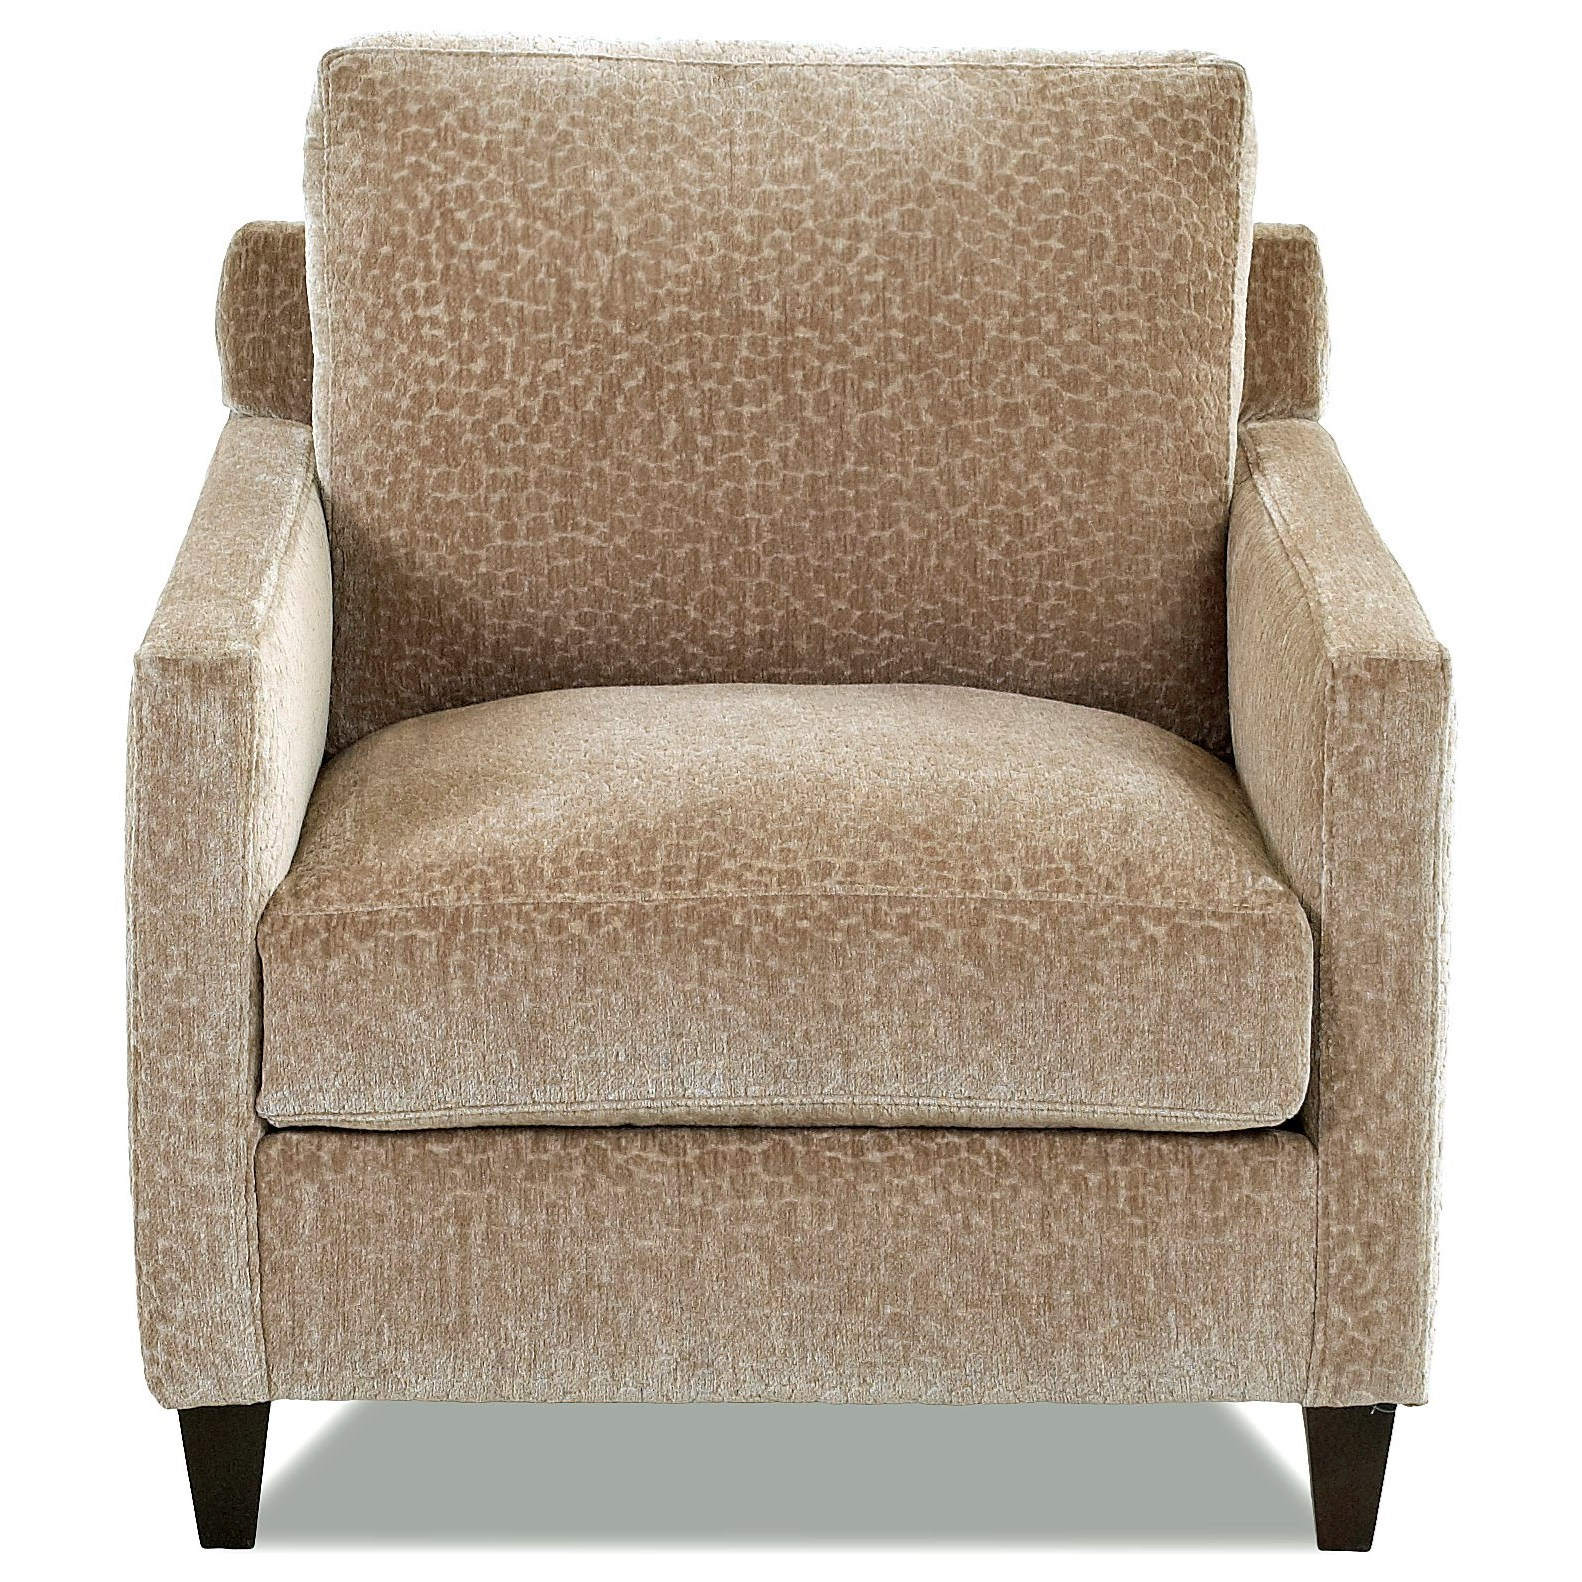 Klaussner Intyce INTYCE Chair - Item Number: K12830 C